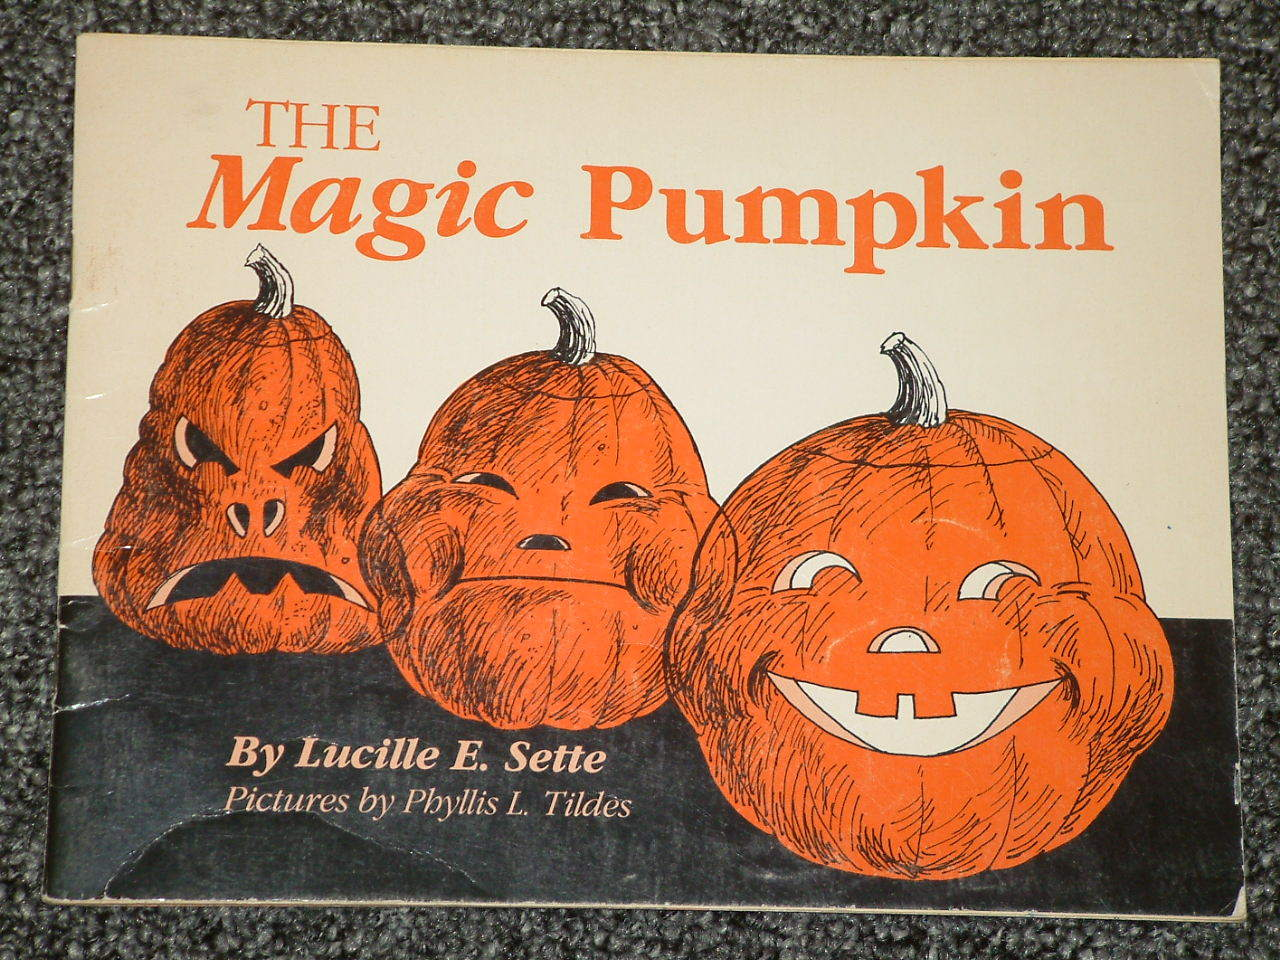 The Magic Pumpkin by Lucille E. Sette